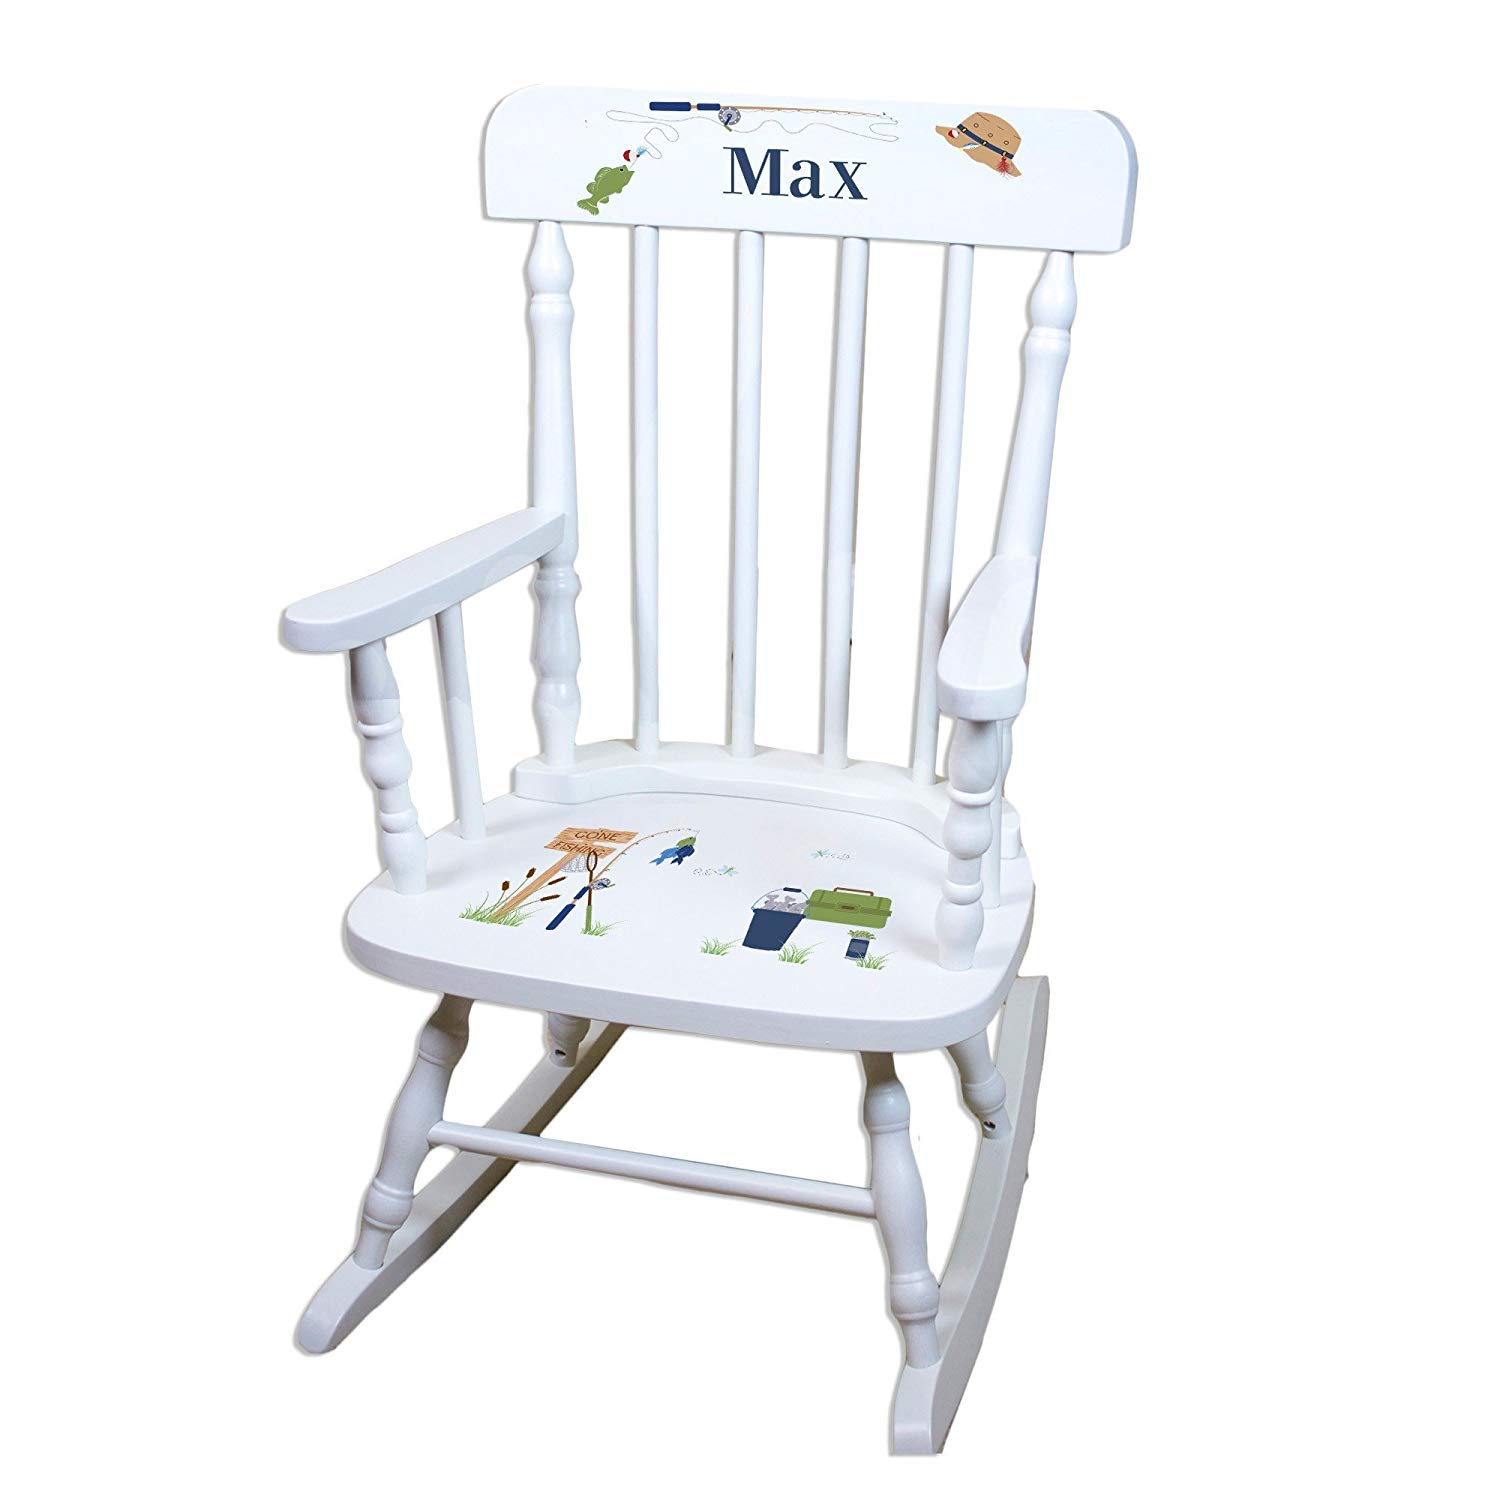 MyBambino Personalized Gone Fishing White Wooden Childrens Rocking Chair